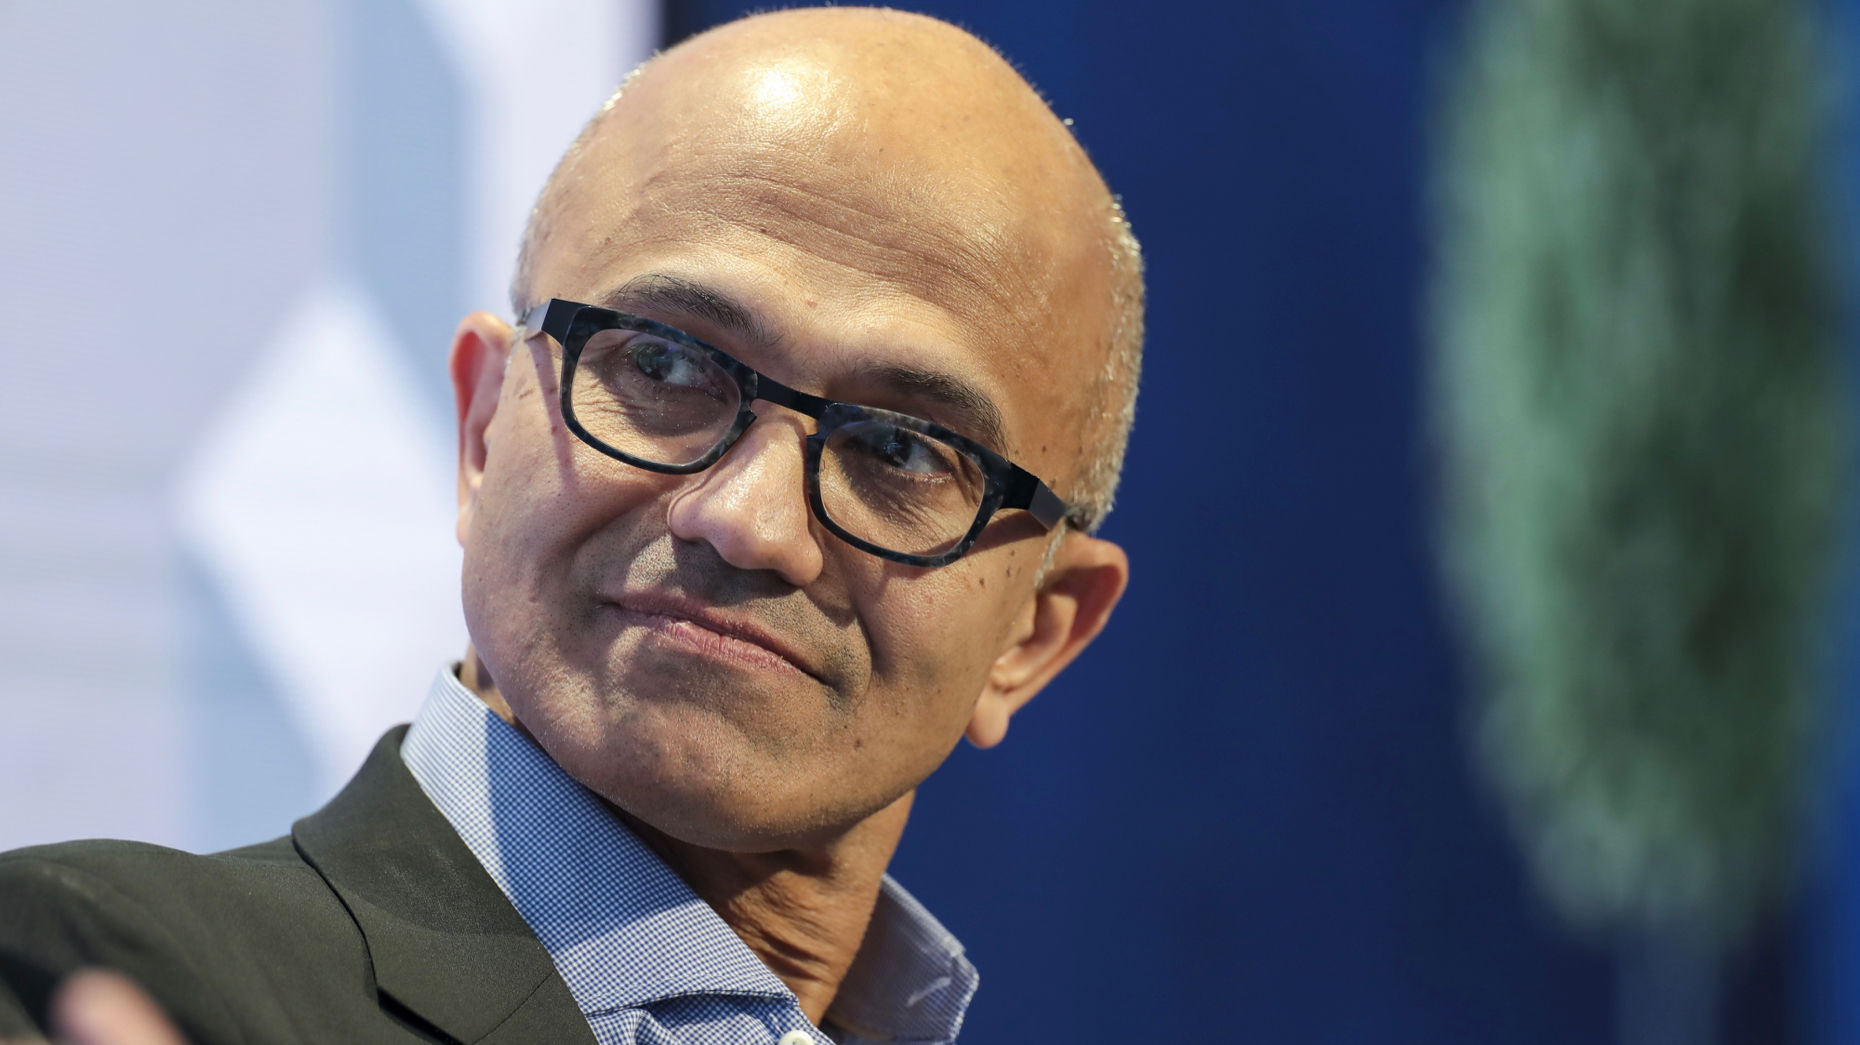 Microsoft CEO Satya Nadella this month at the World Economic Forum in Davos, Switzerland. Photo by Bloomberg